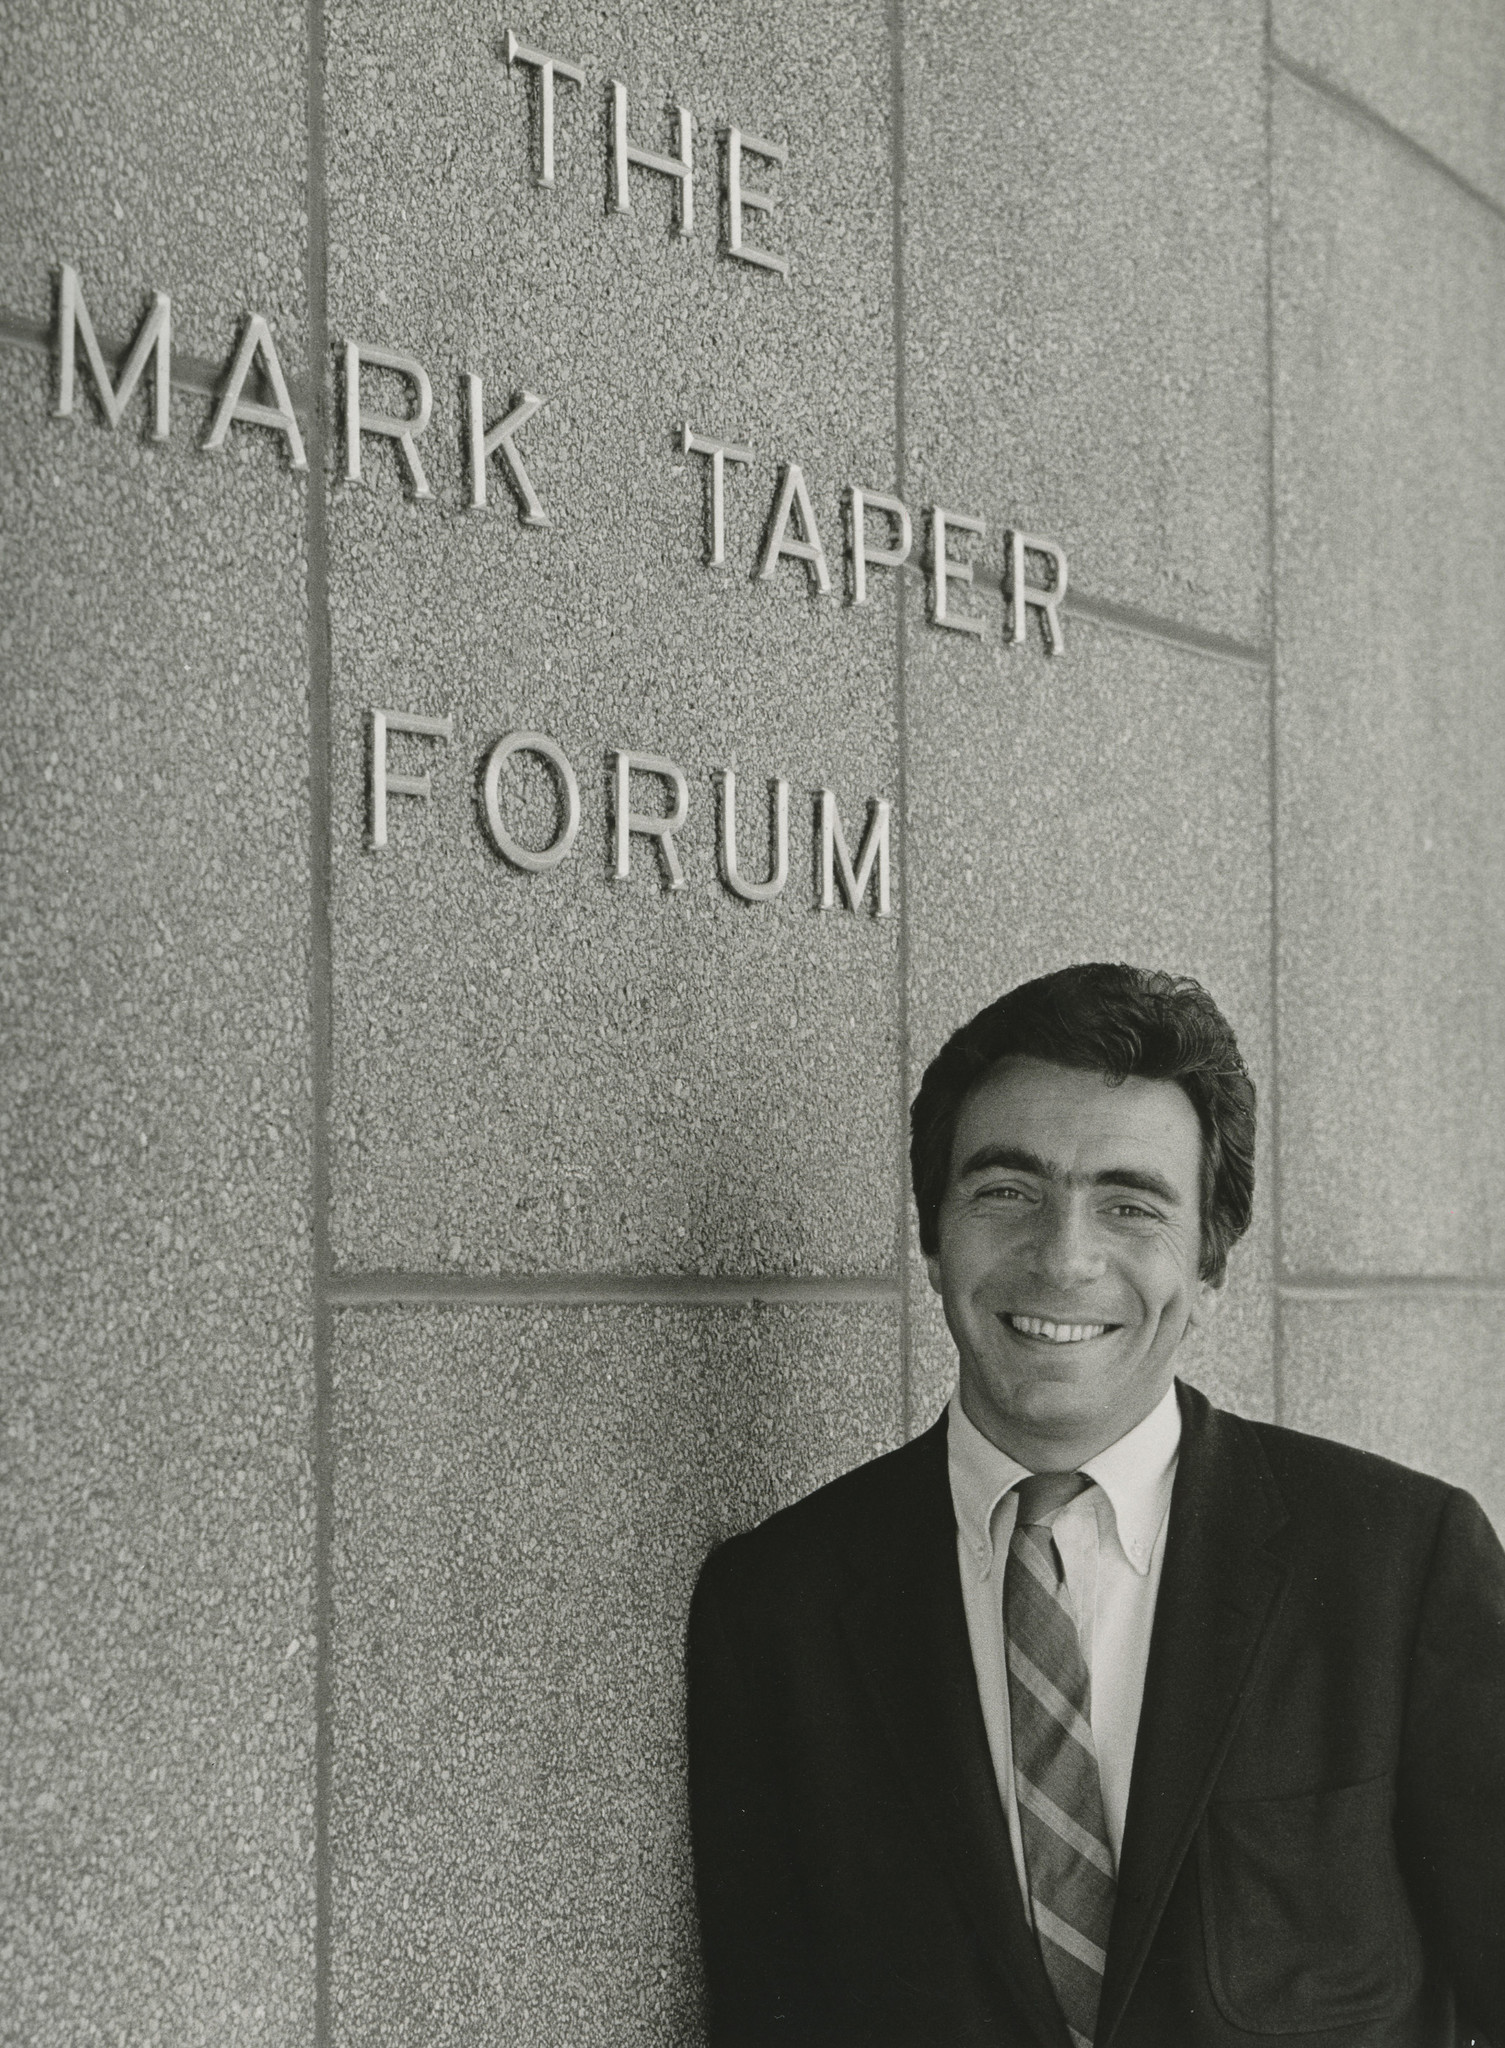 Gordon Davidson in an early year of his Mark Taper Forum tenure.